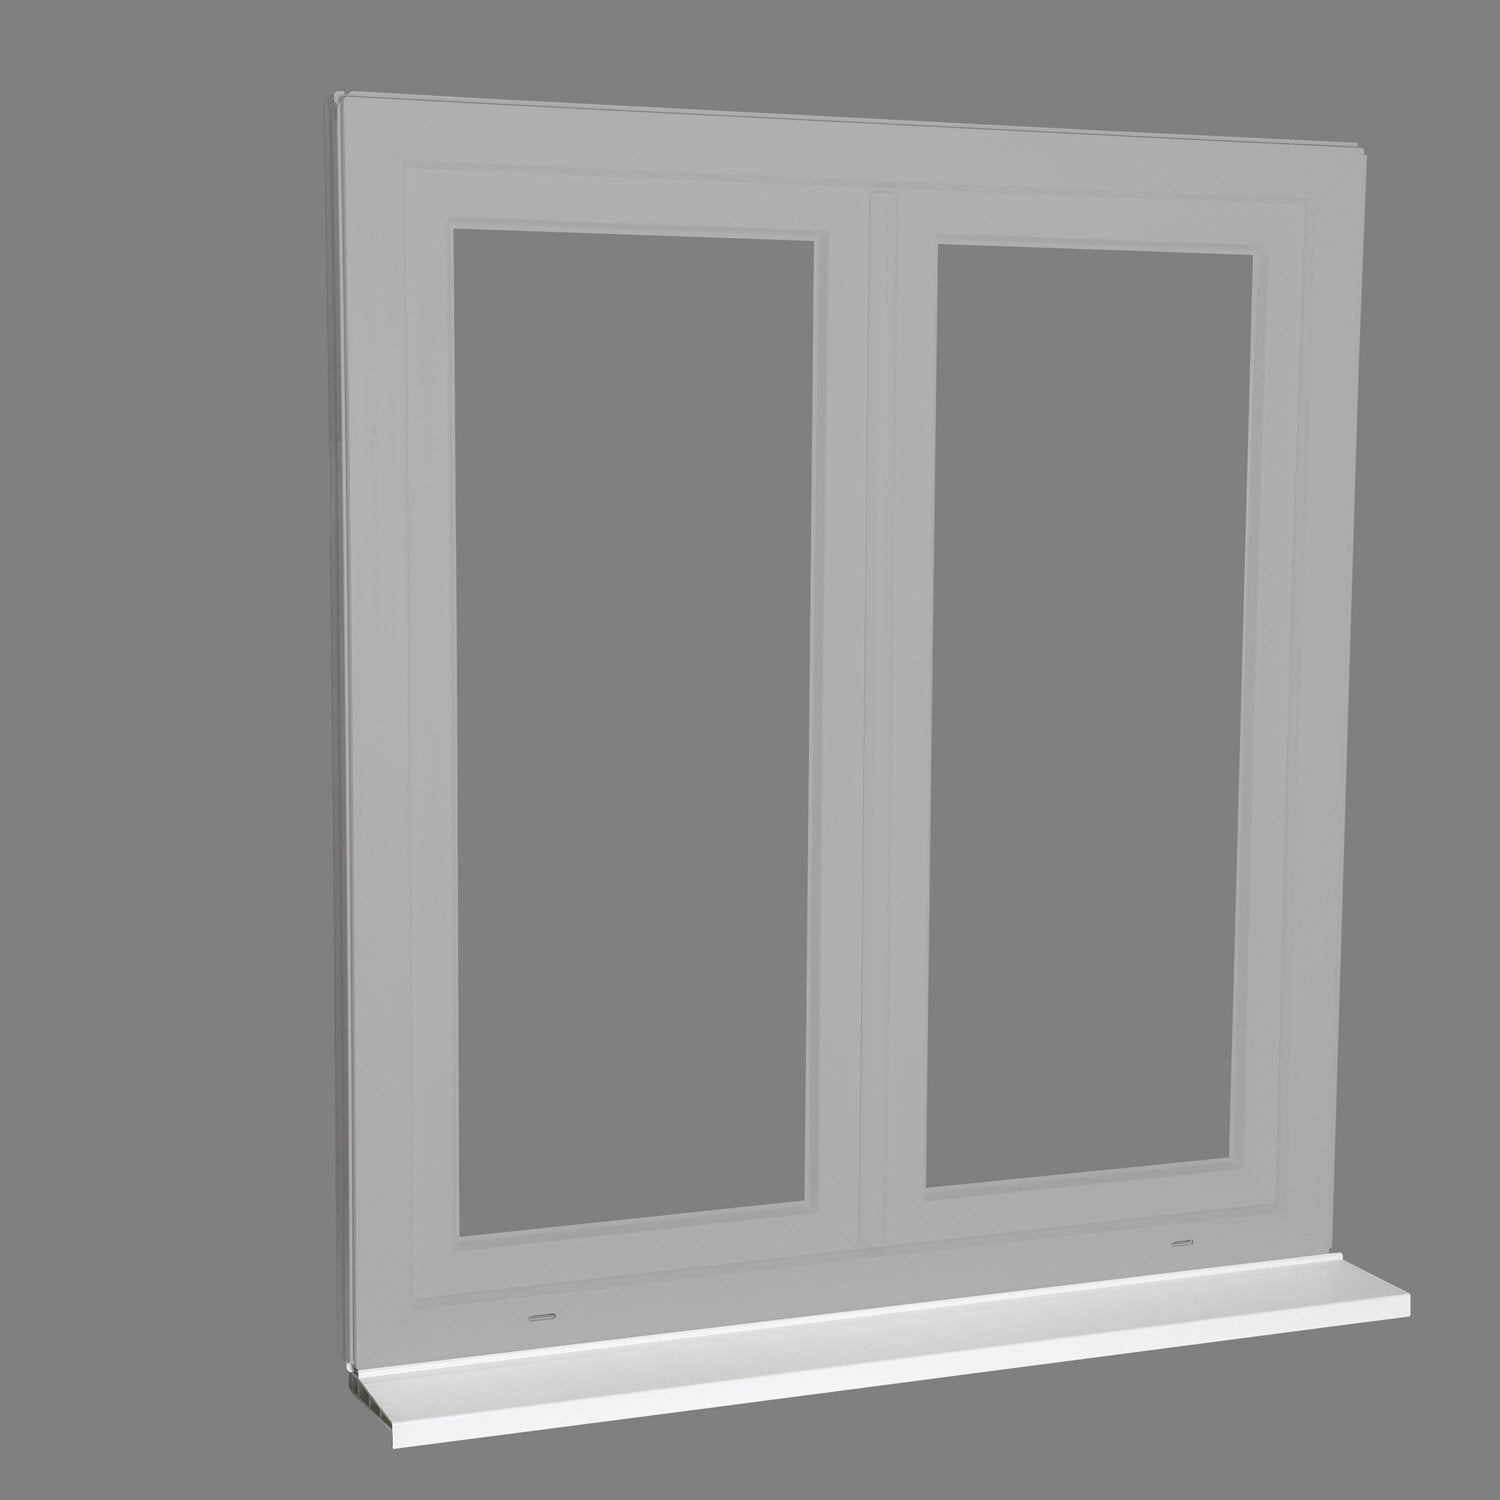 Leroy merlin fenetres pvc 28 images installation for Porte fenetre pvc